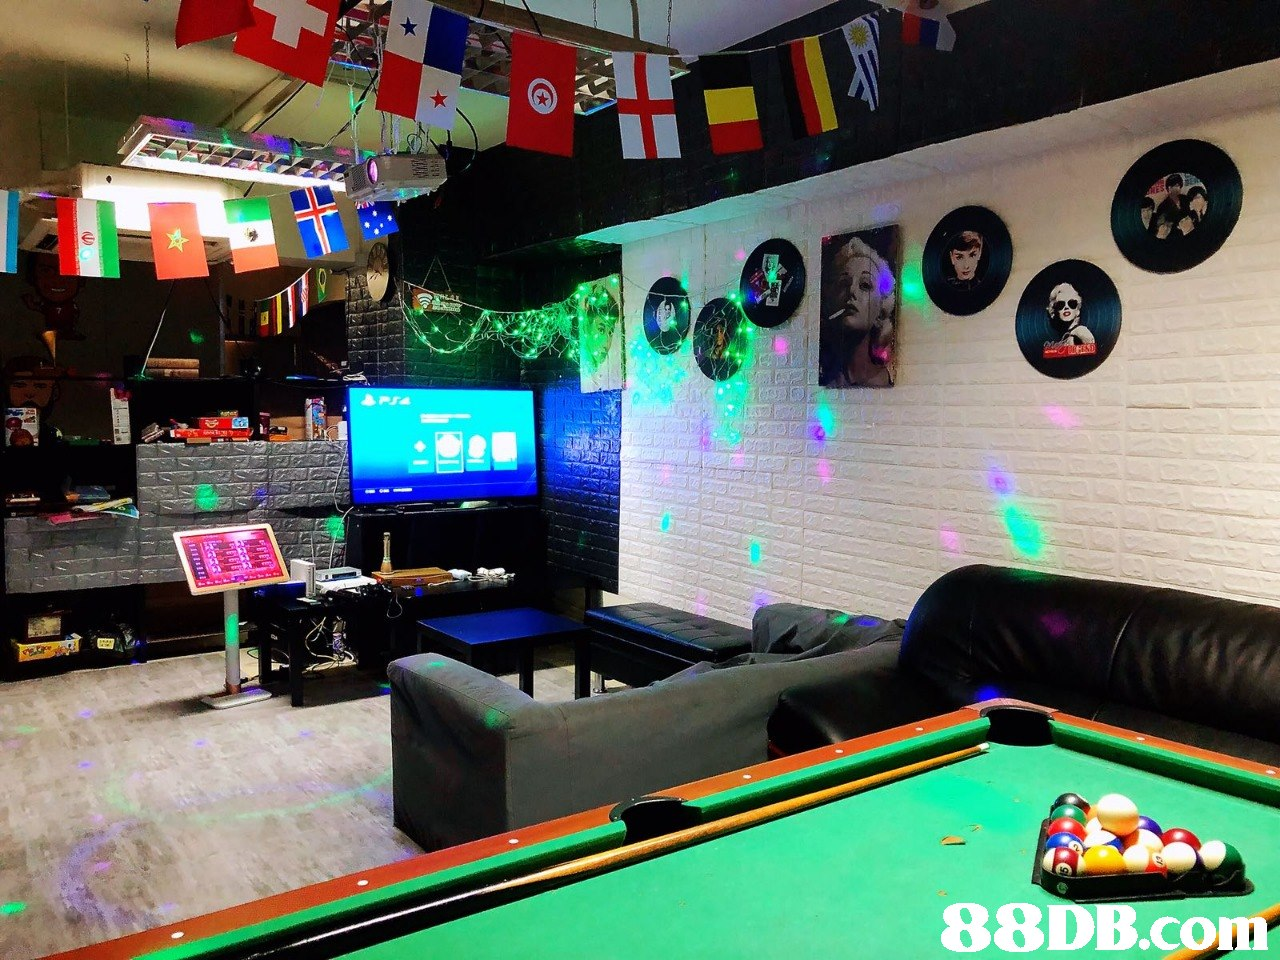 8r 8DB.com,recreation room,billiard room,games,indoor games and sports,display device